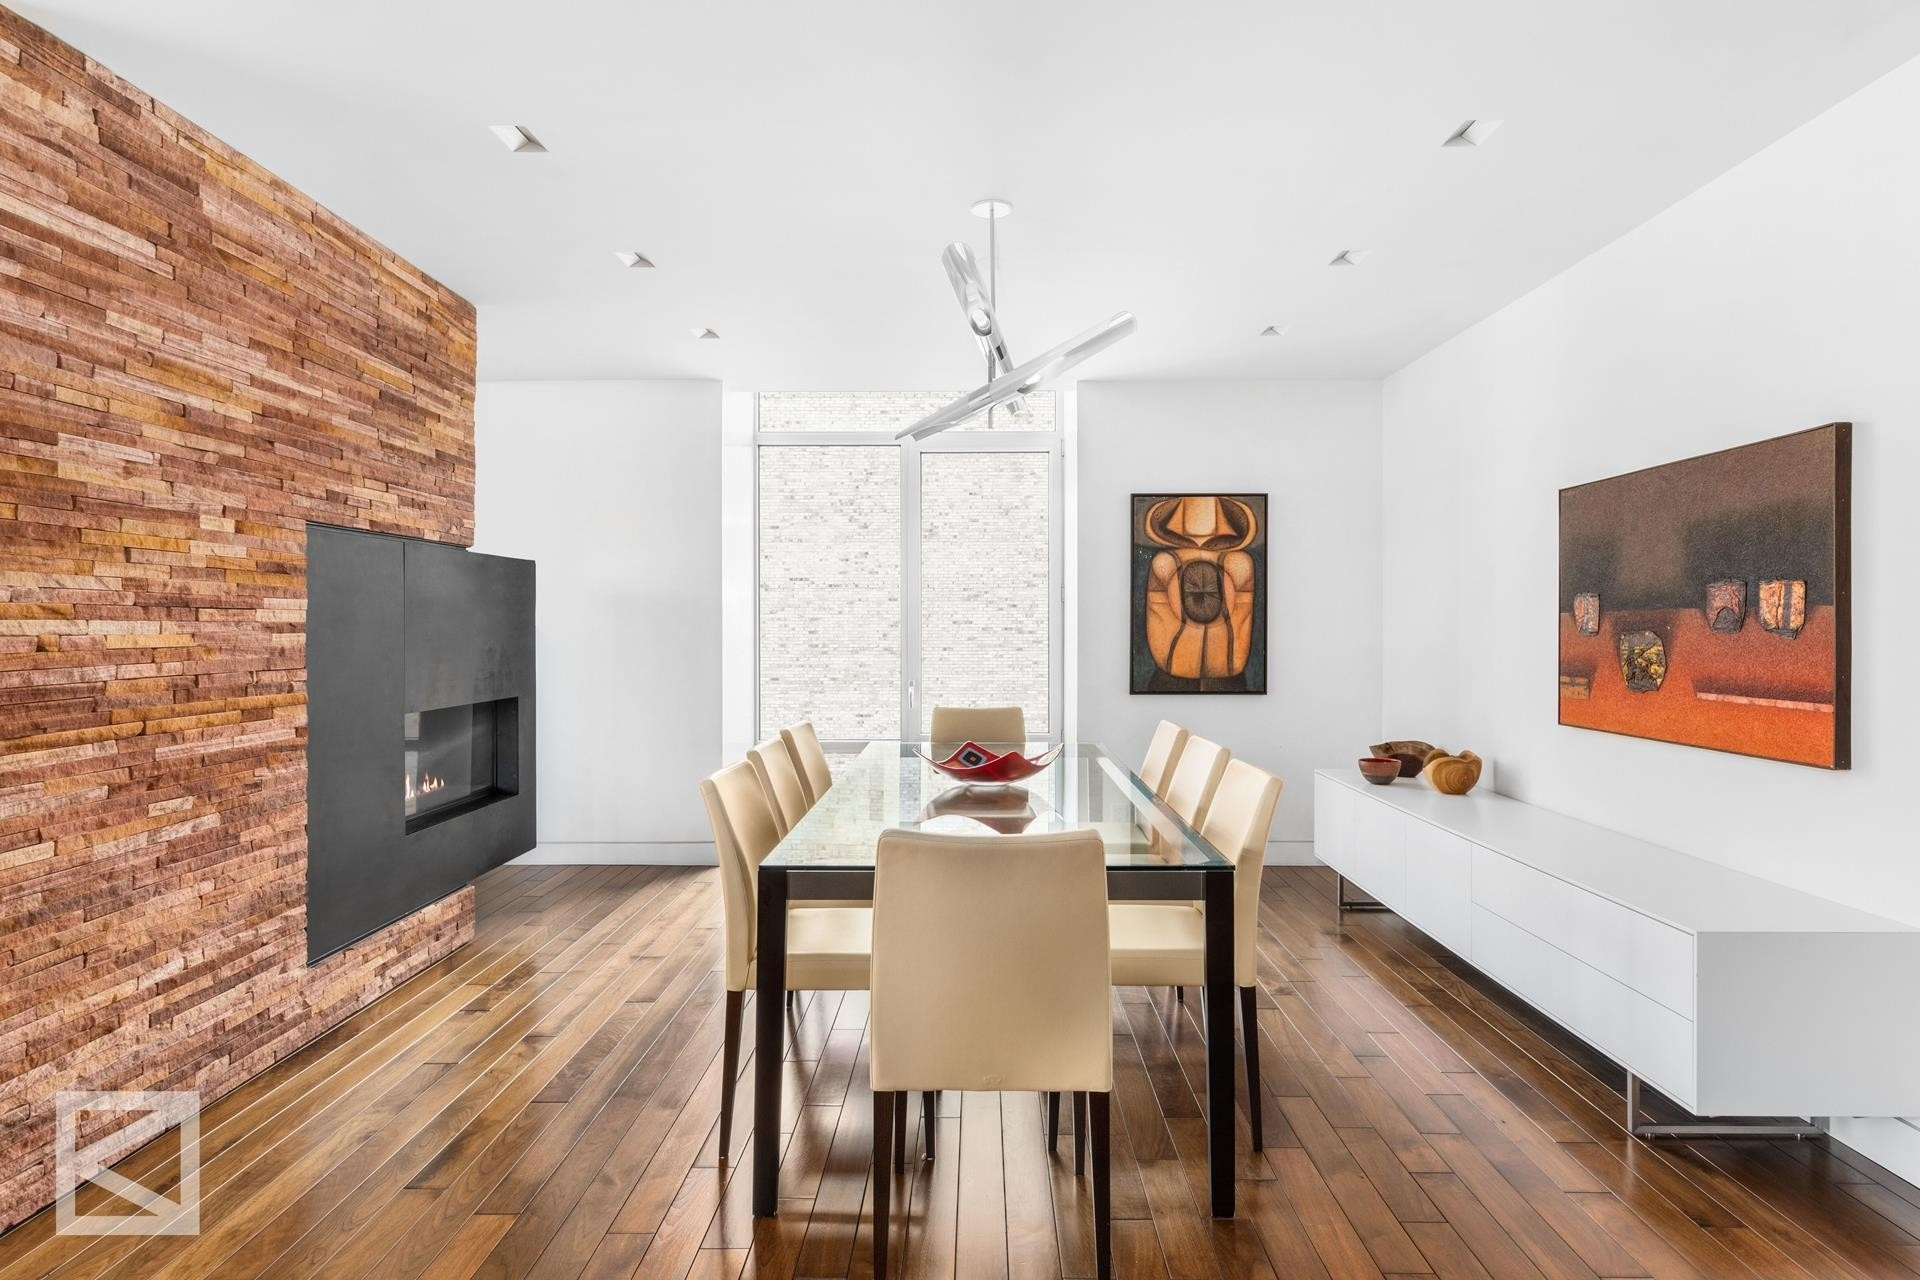 5. Condominiums for Sale at 520 West Chelsea, 520 West 19th St, PHA Chelsea, New York, NY 10011